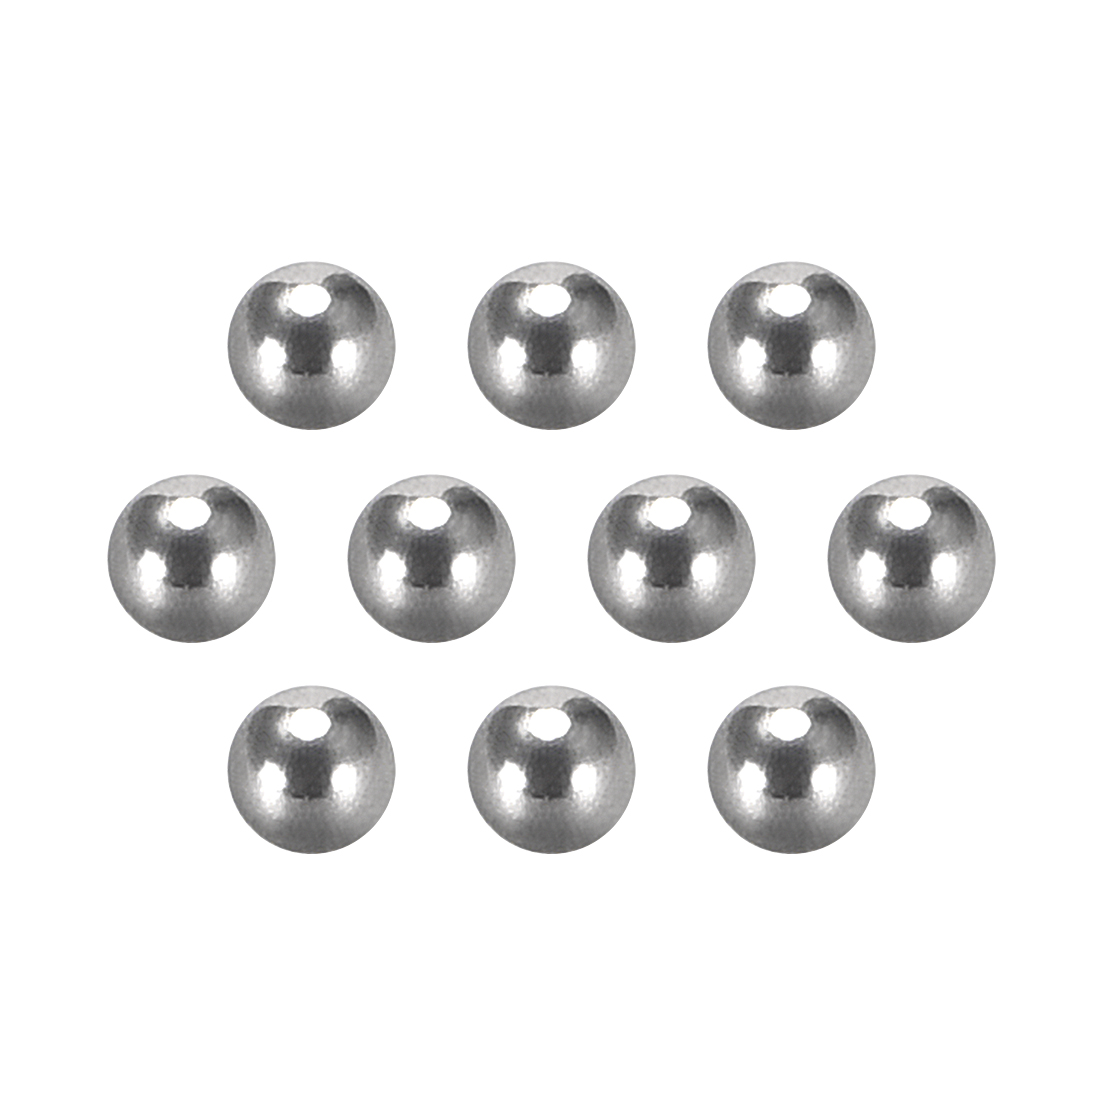 Precision 304 Stainless Steel Bearing Balls 3/32 Inch G5 10pcs